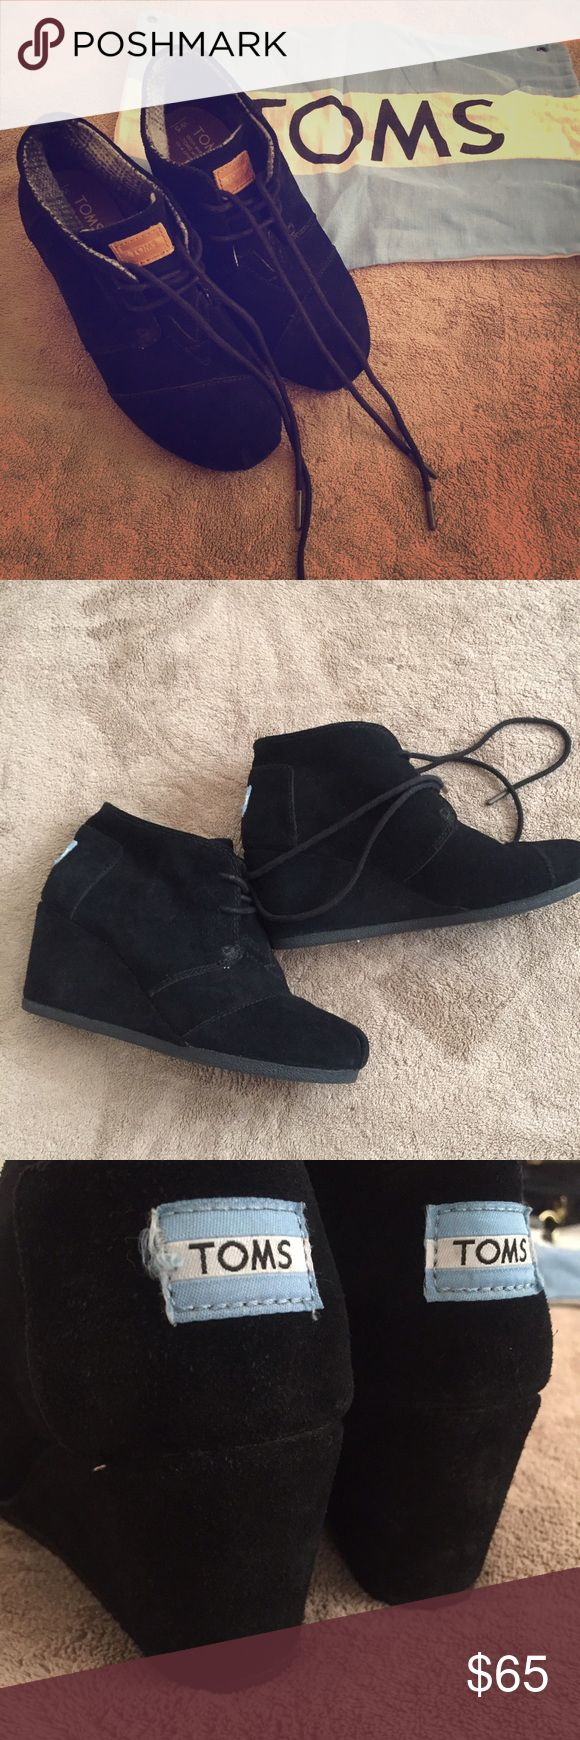 Toms wedge booties Authentic. Comes with it's original dustbag. Condition like new, flawless. Black suede TOMS Shoes Ankle Boots & Booties